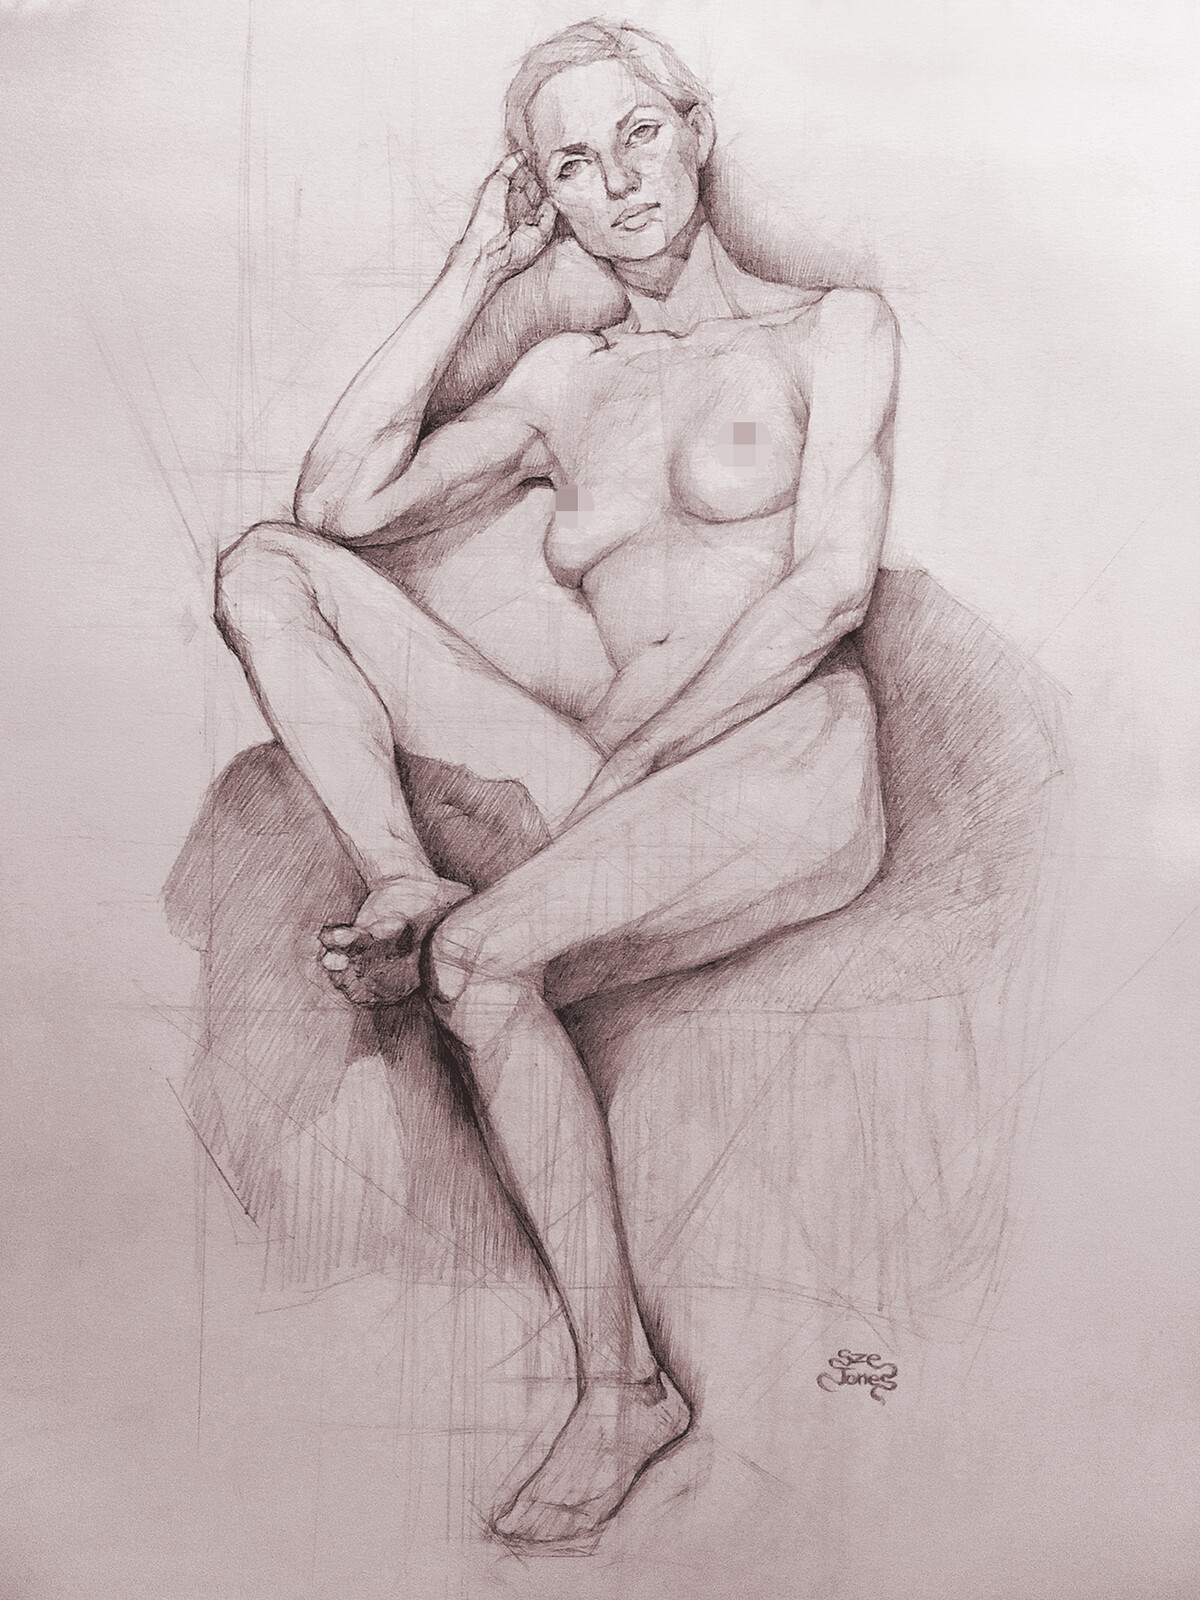 Figurative Drawing - 8 weeks Long Pose